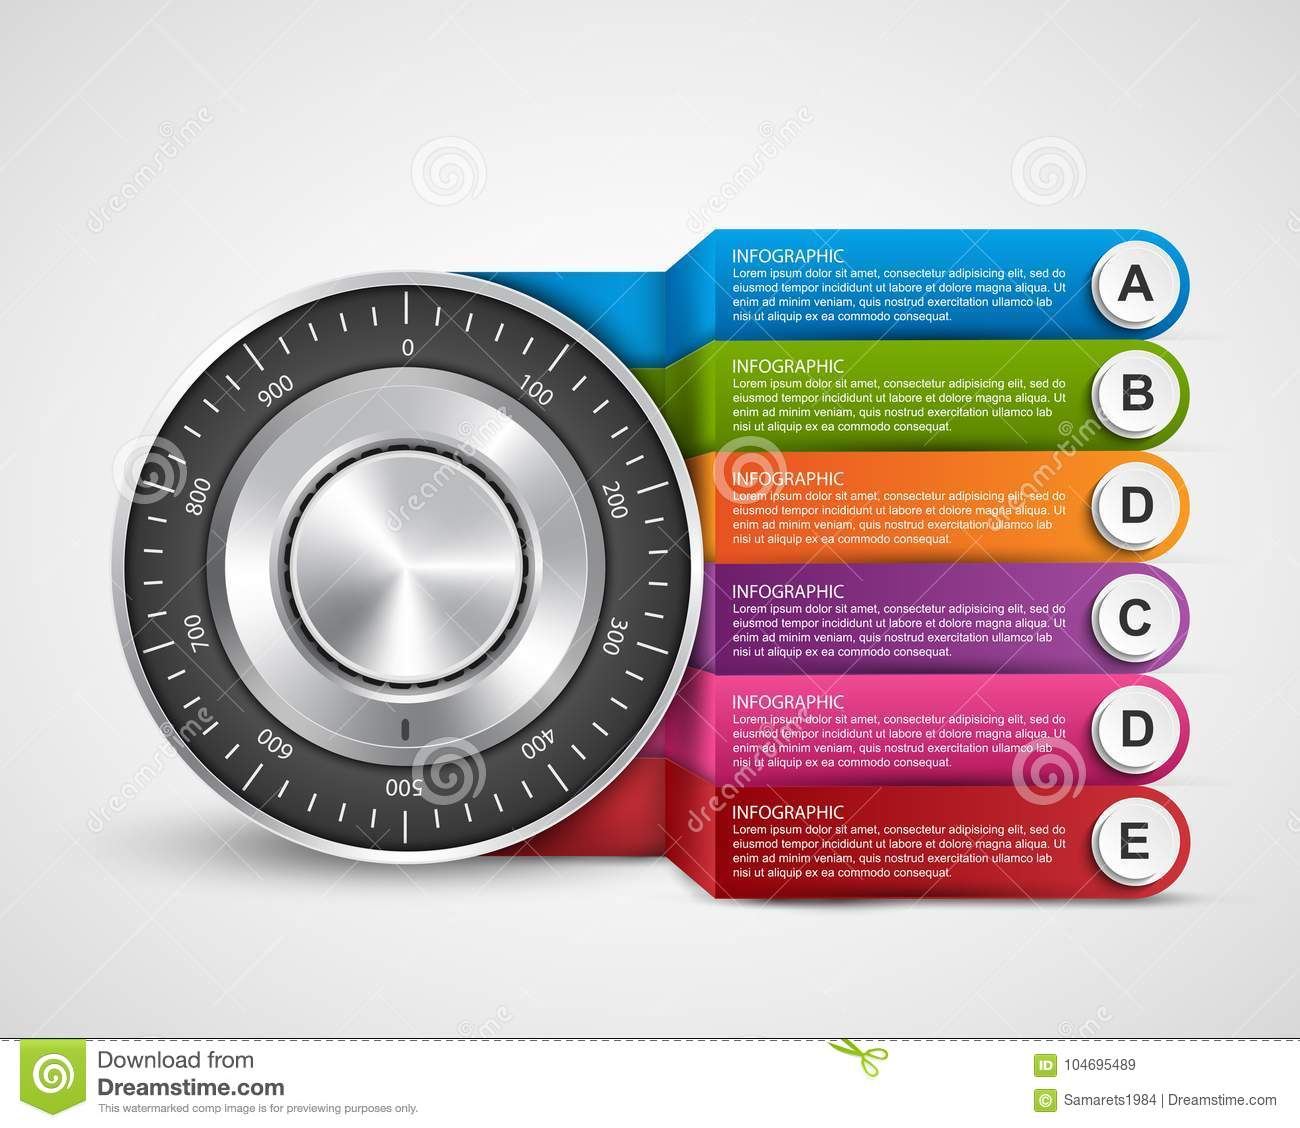 infographic design template  protection information  combination safe lock  design concept